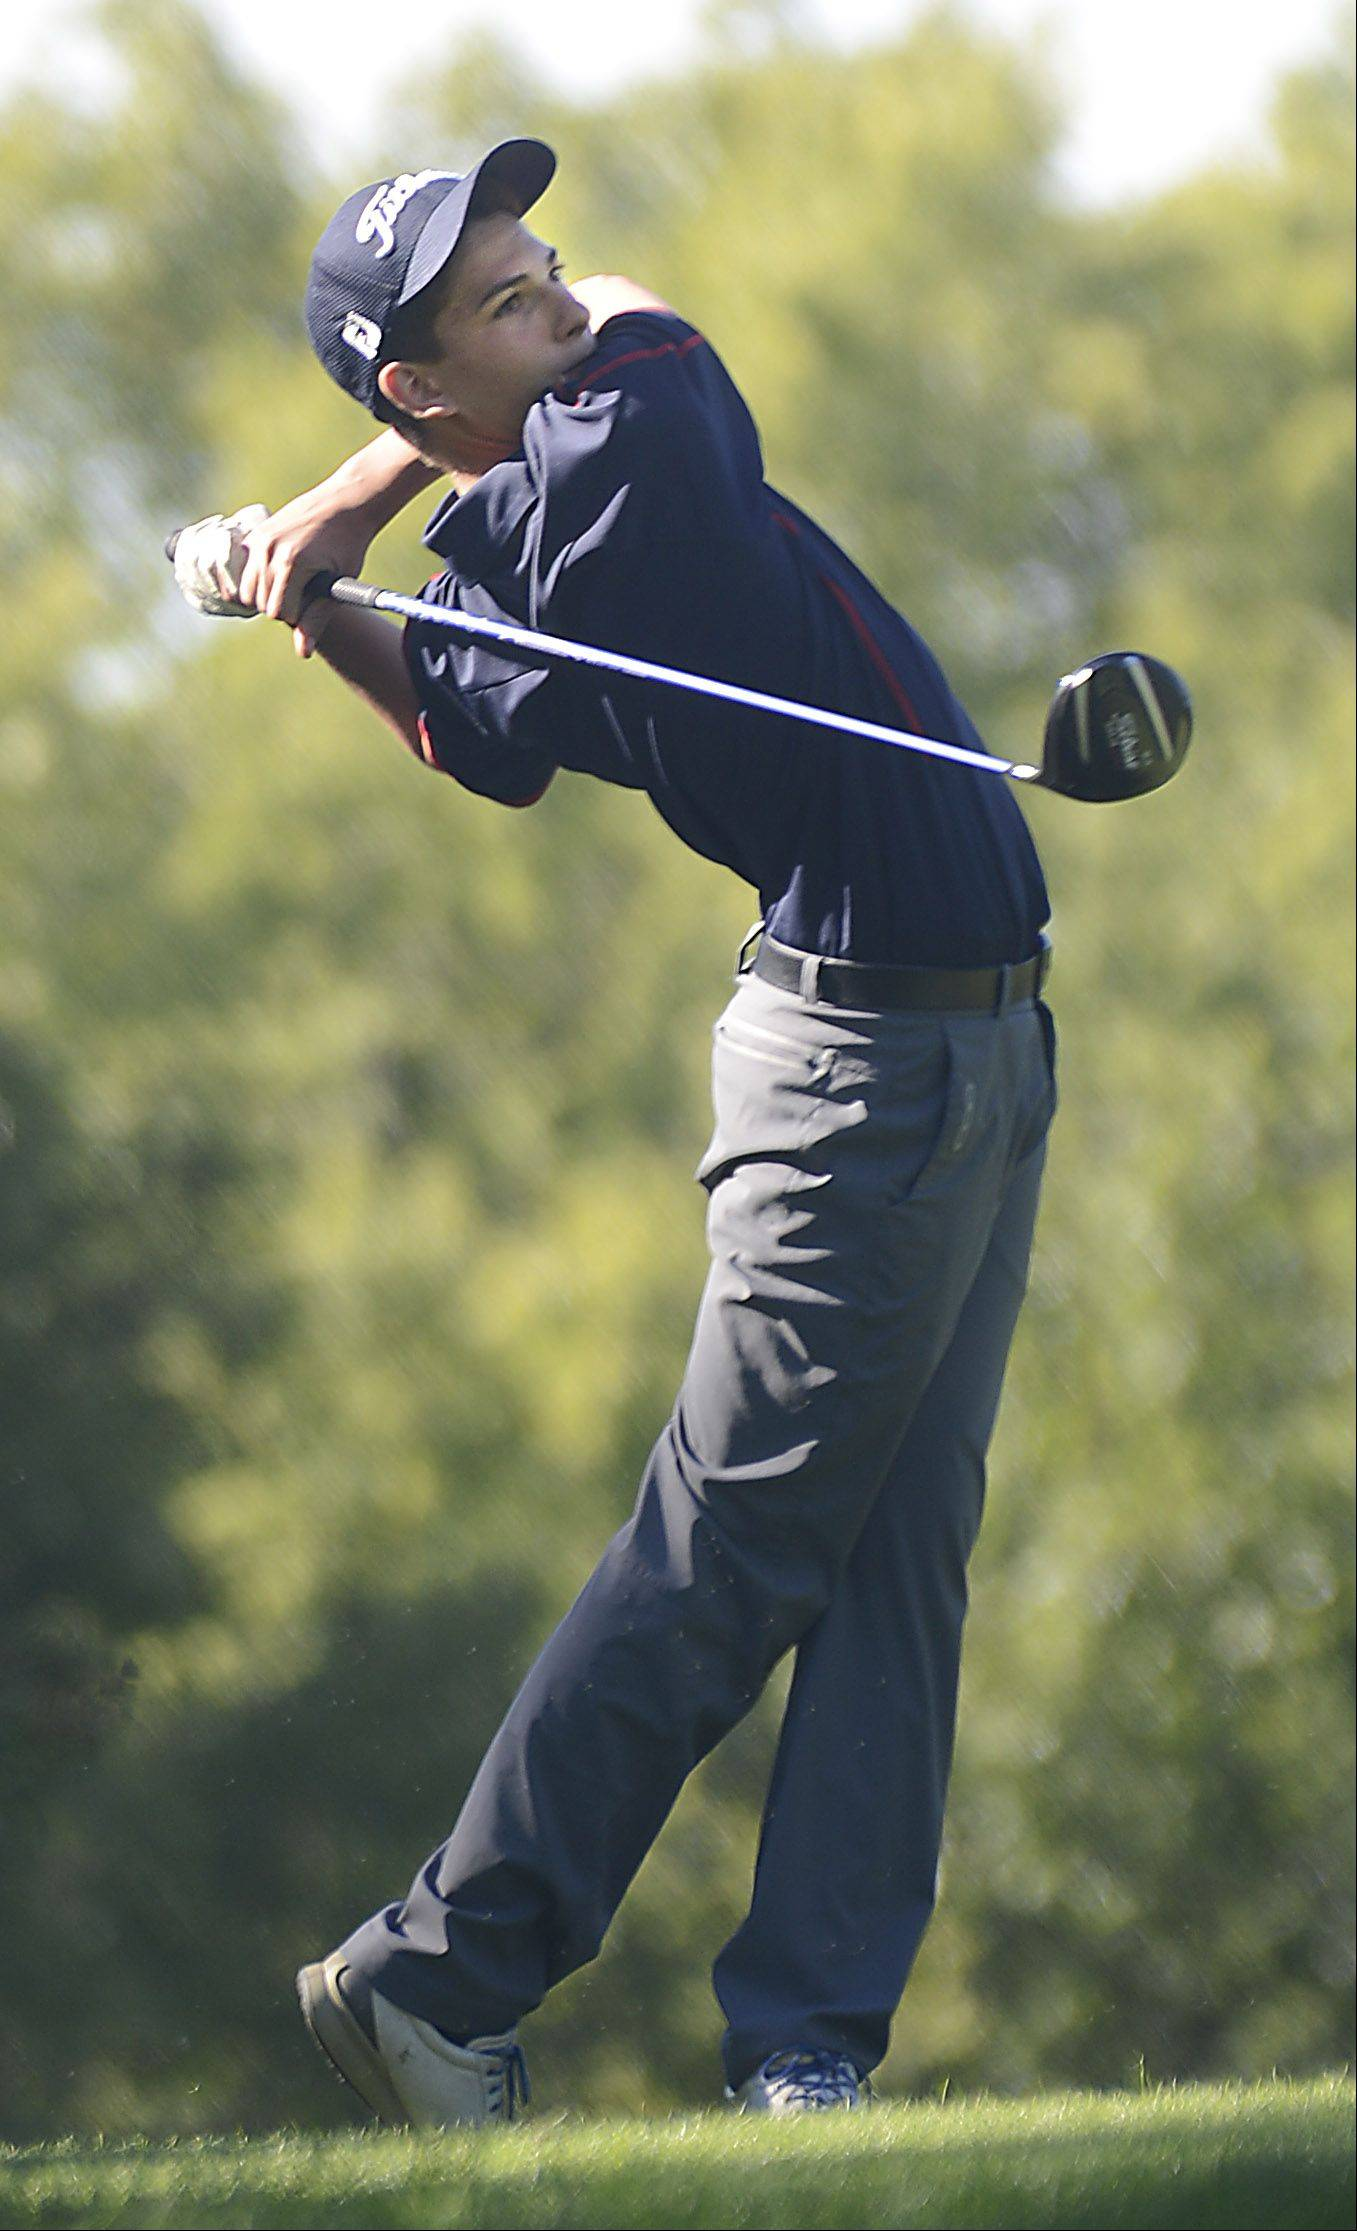 South Elgin's Devin Meredith tees off on No. 11 Monday at the Elgin boys golf invitational at Bartlett Golf Club.